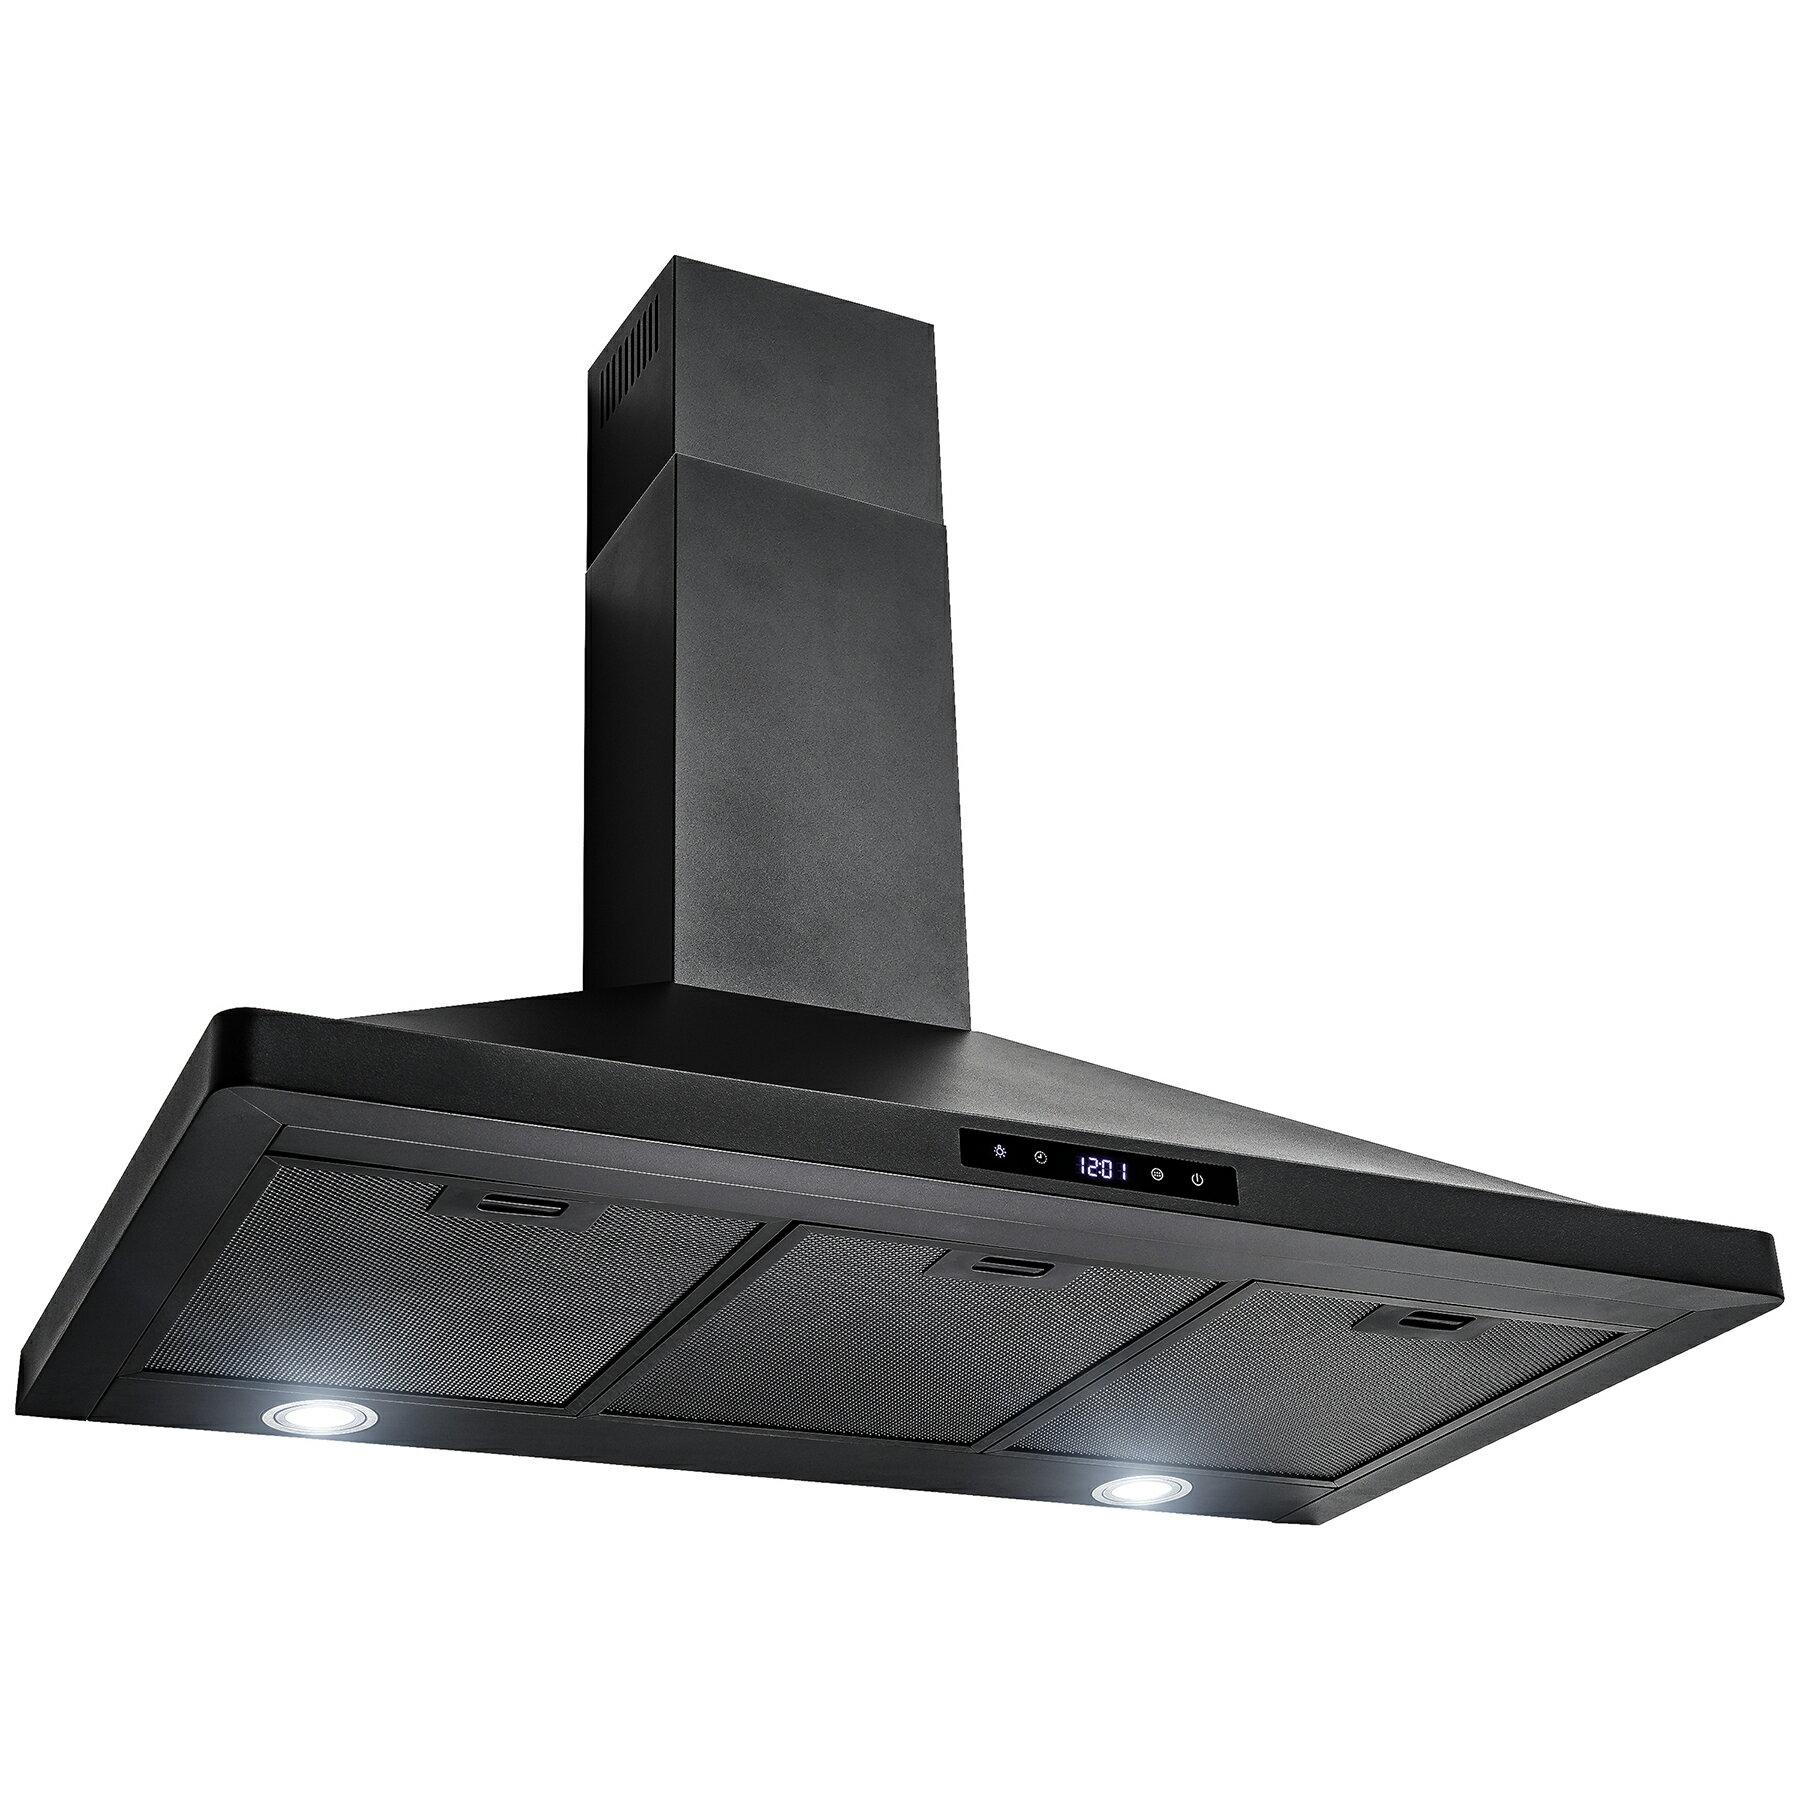 "AKDY Black Finish 36"" Stainless Steel Touch Control Wall Mount Range Hood Cooking Fan Vent 3"